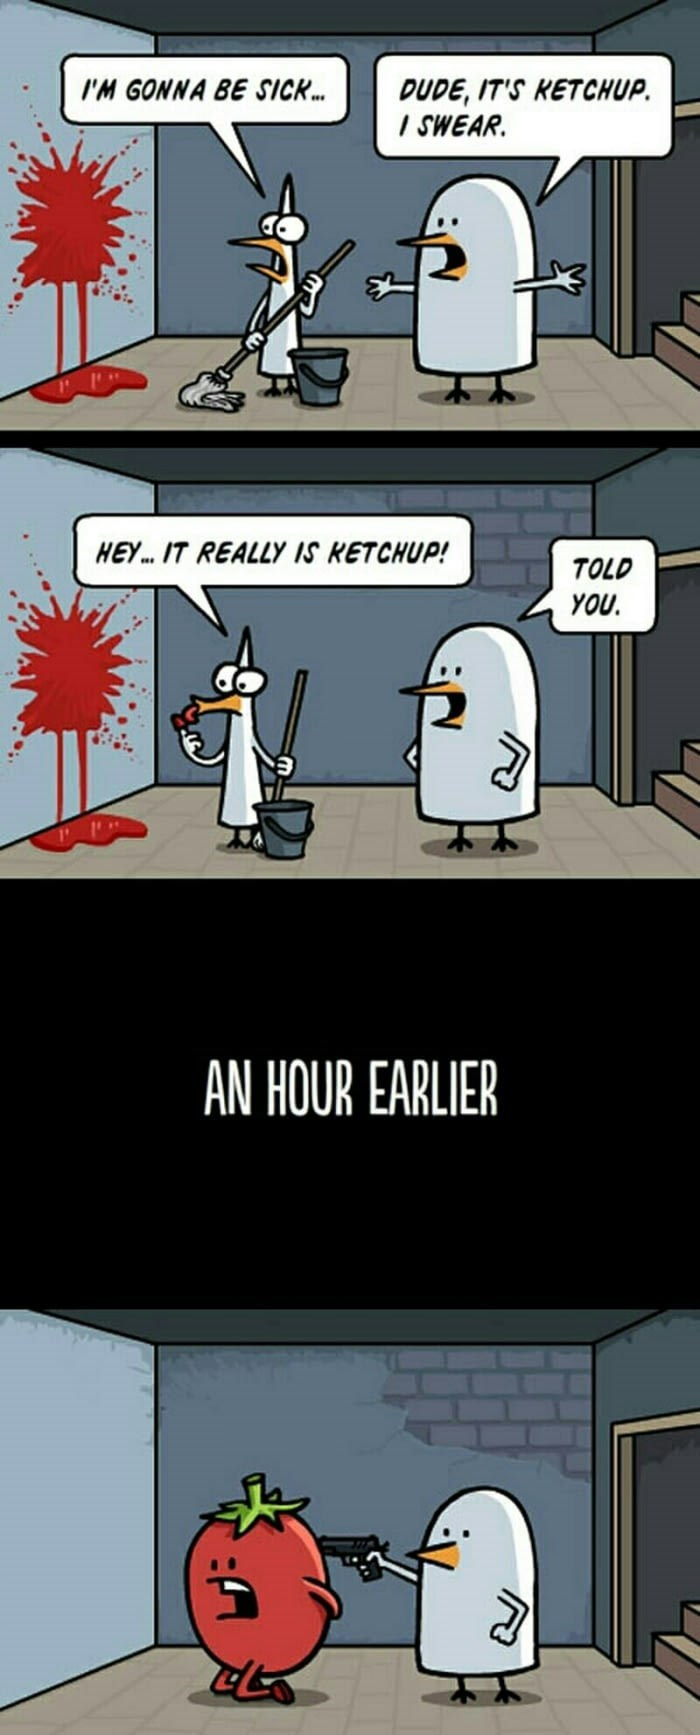 Cartoon - I'M GONNA BE SICK. DUDE, IT'S KETCHUP. I SWEAR. HEY. IT REALLY IS KETCHUP! TOLD YOU. AN HOUR EARLIER